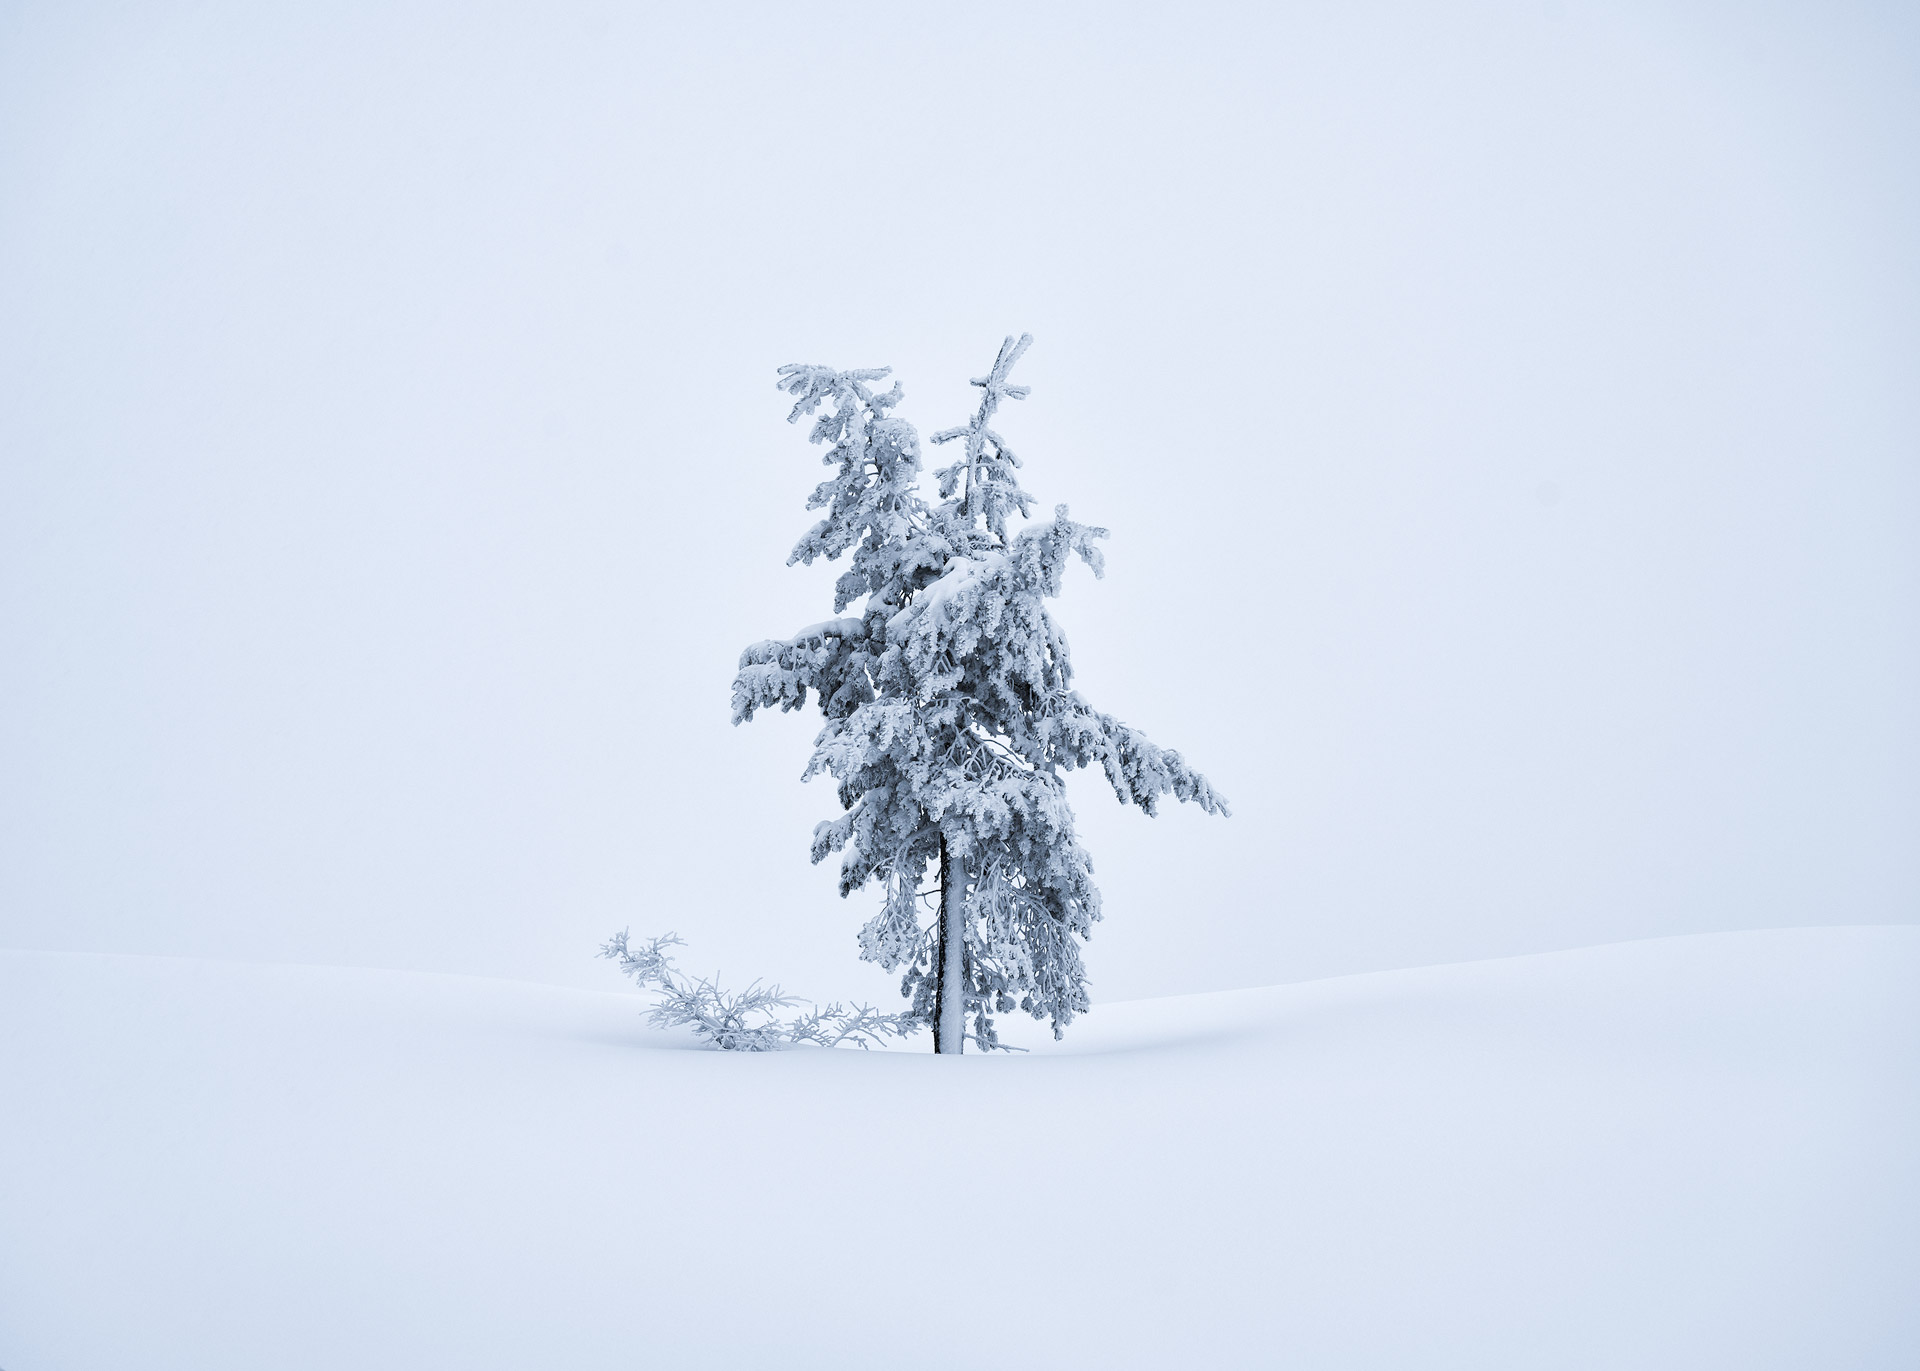 Tree in snowstorm - scouting pays off